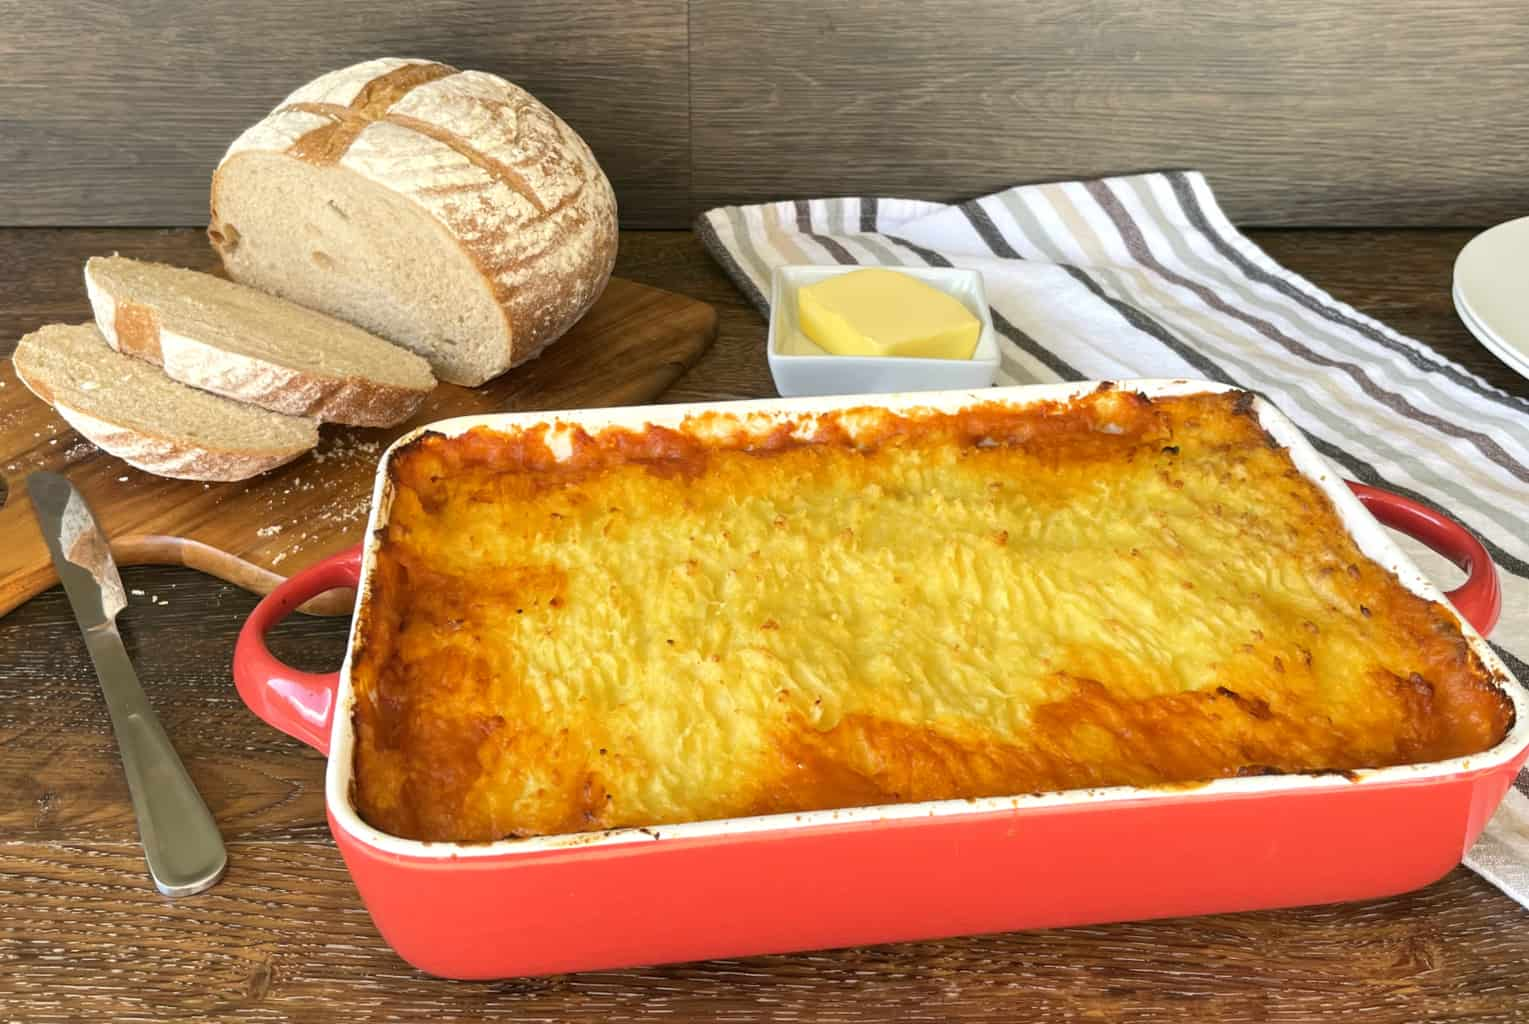 Large red dish with devilled sausage shepherds pie, crusty loaf of bread and butter